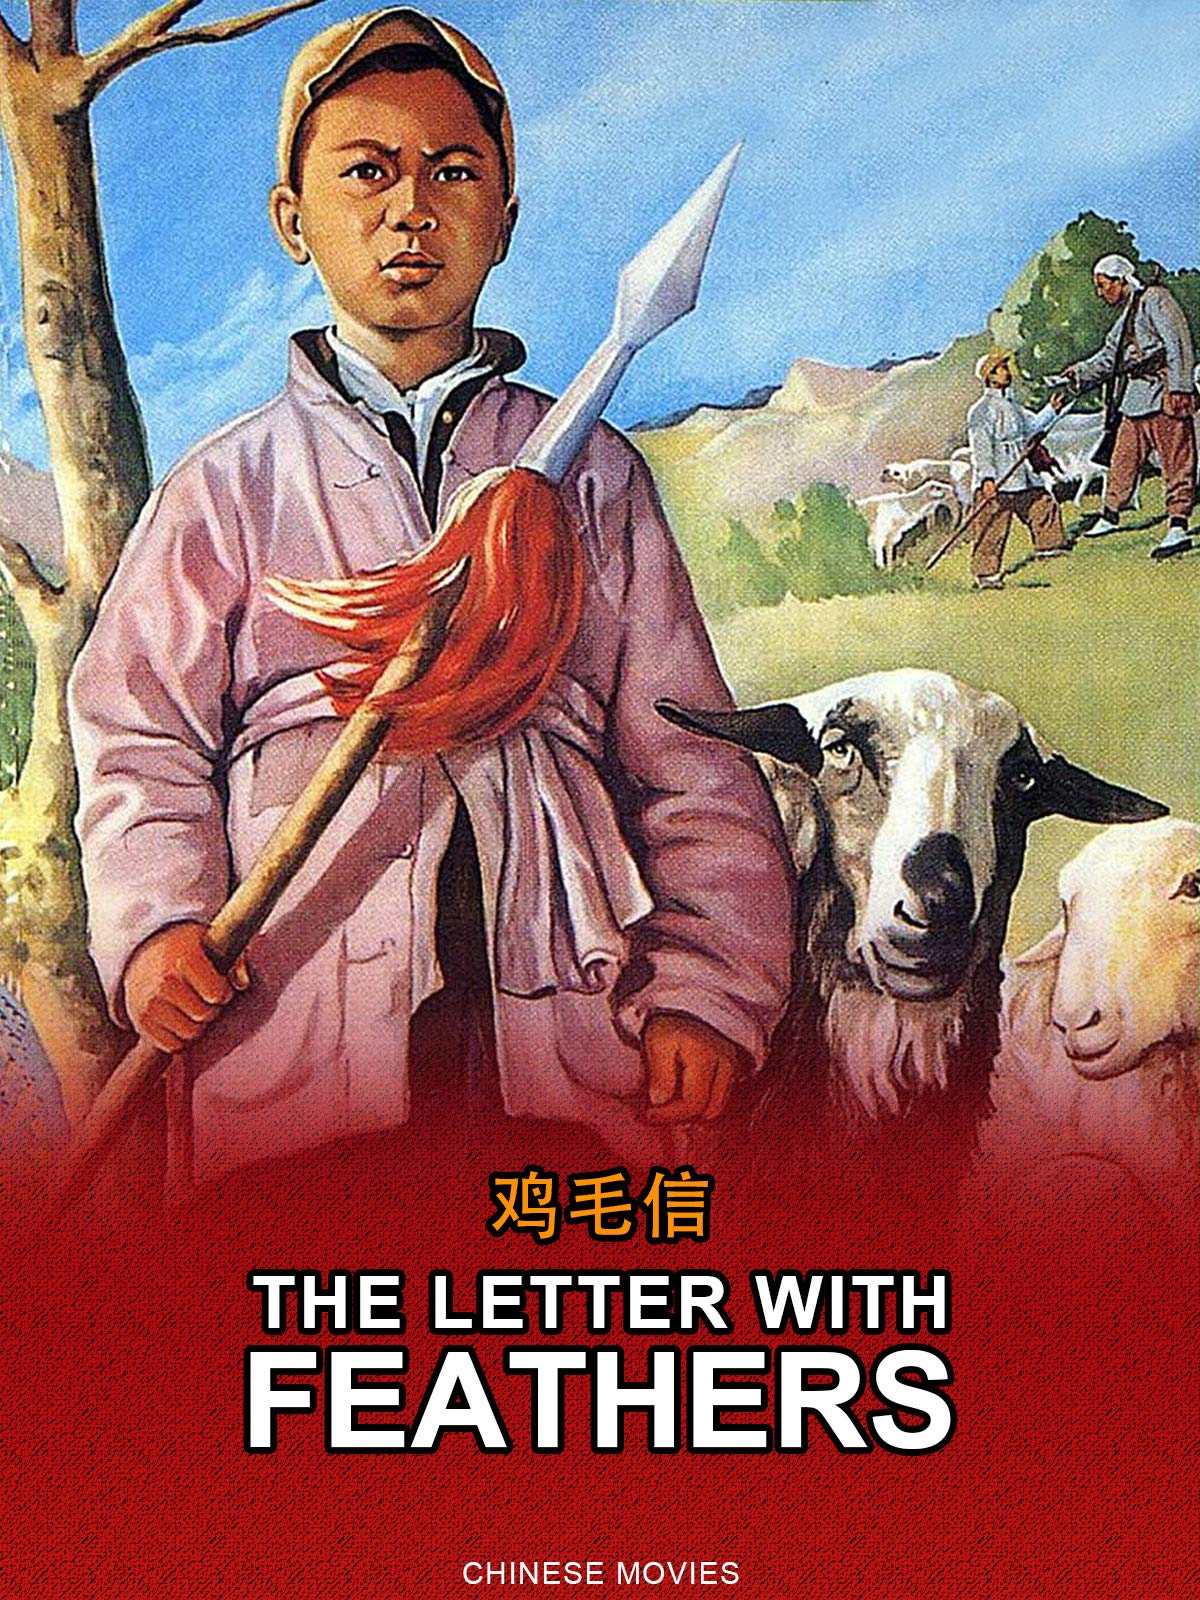 Chinese movies-The Letter With Feathers